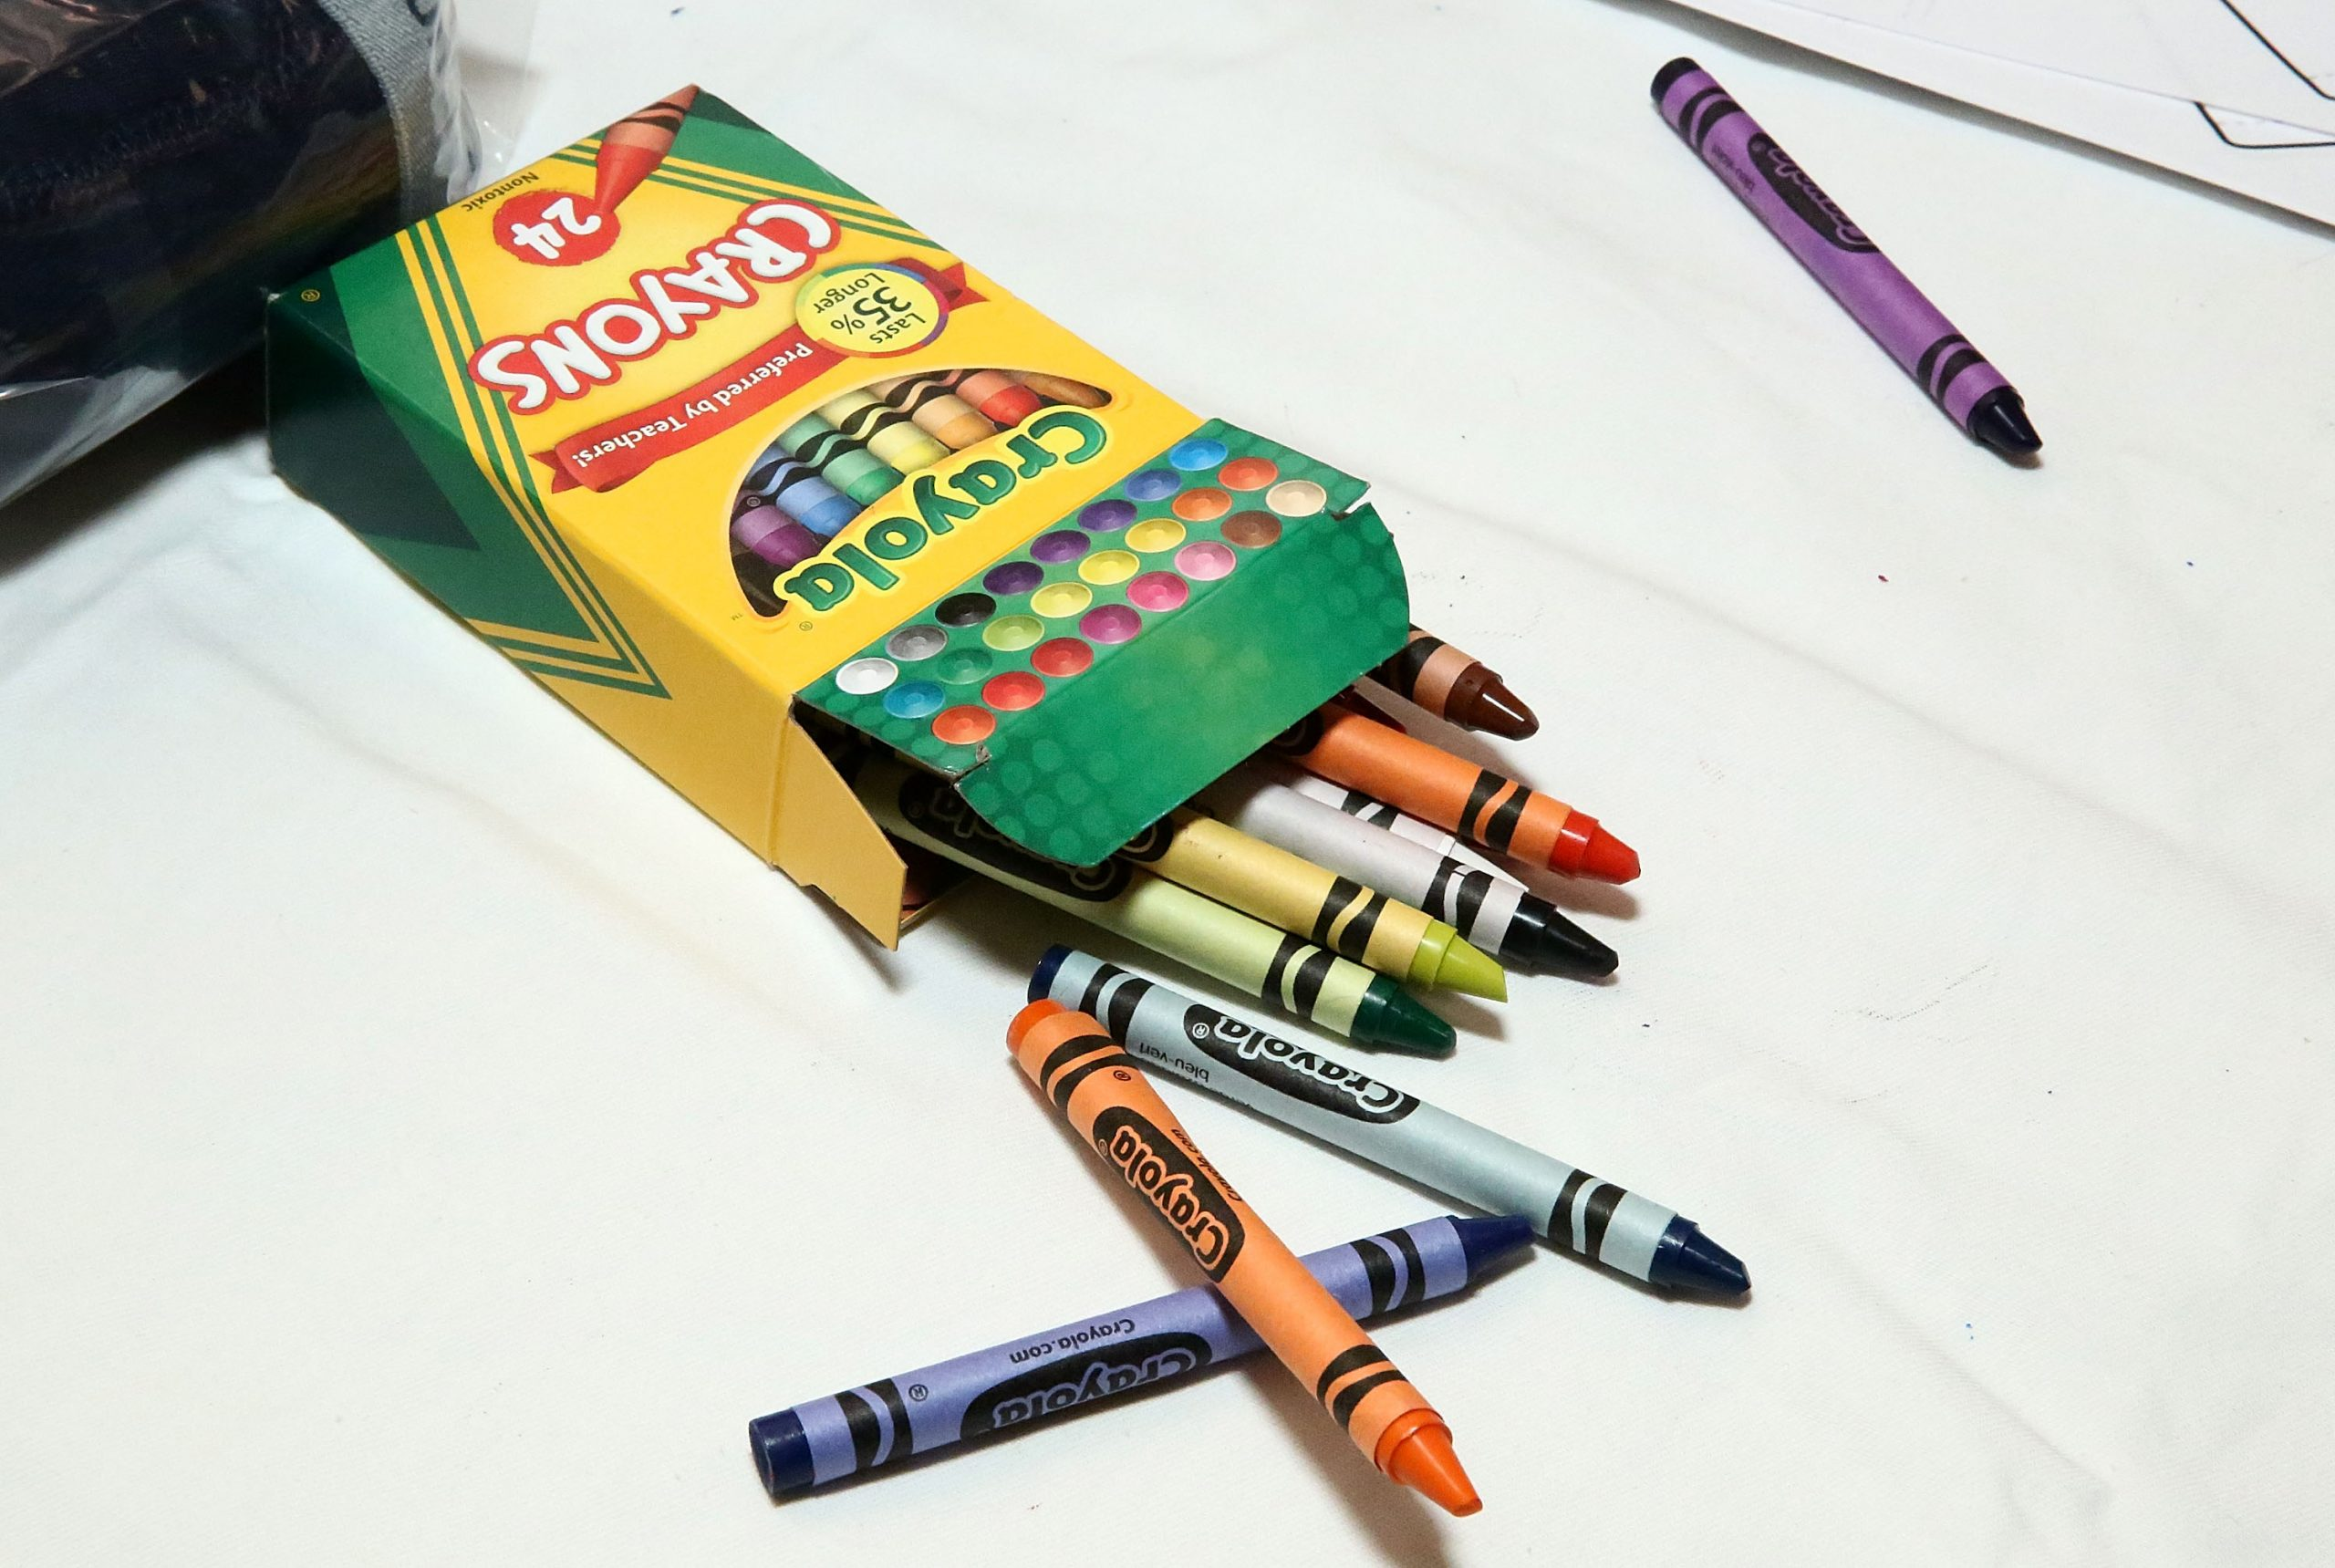 Crayola is retiring this crayon color today